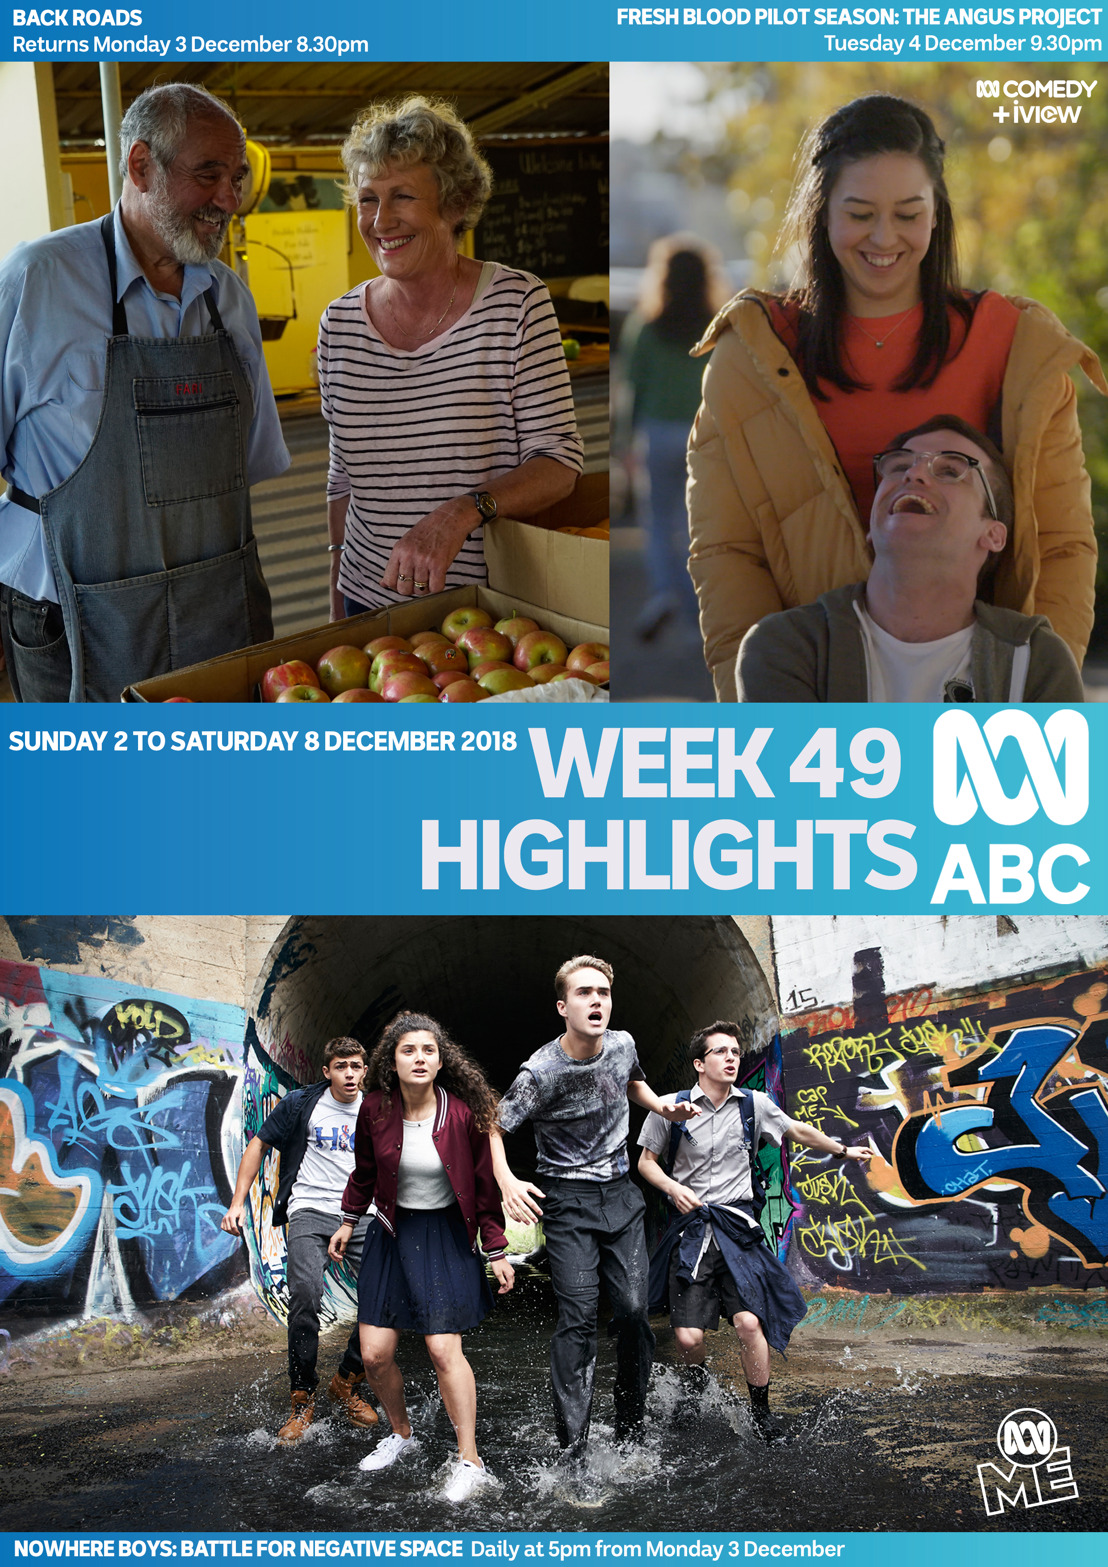 ABC TV Program Highlights - Week 49